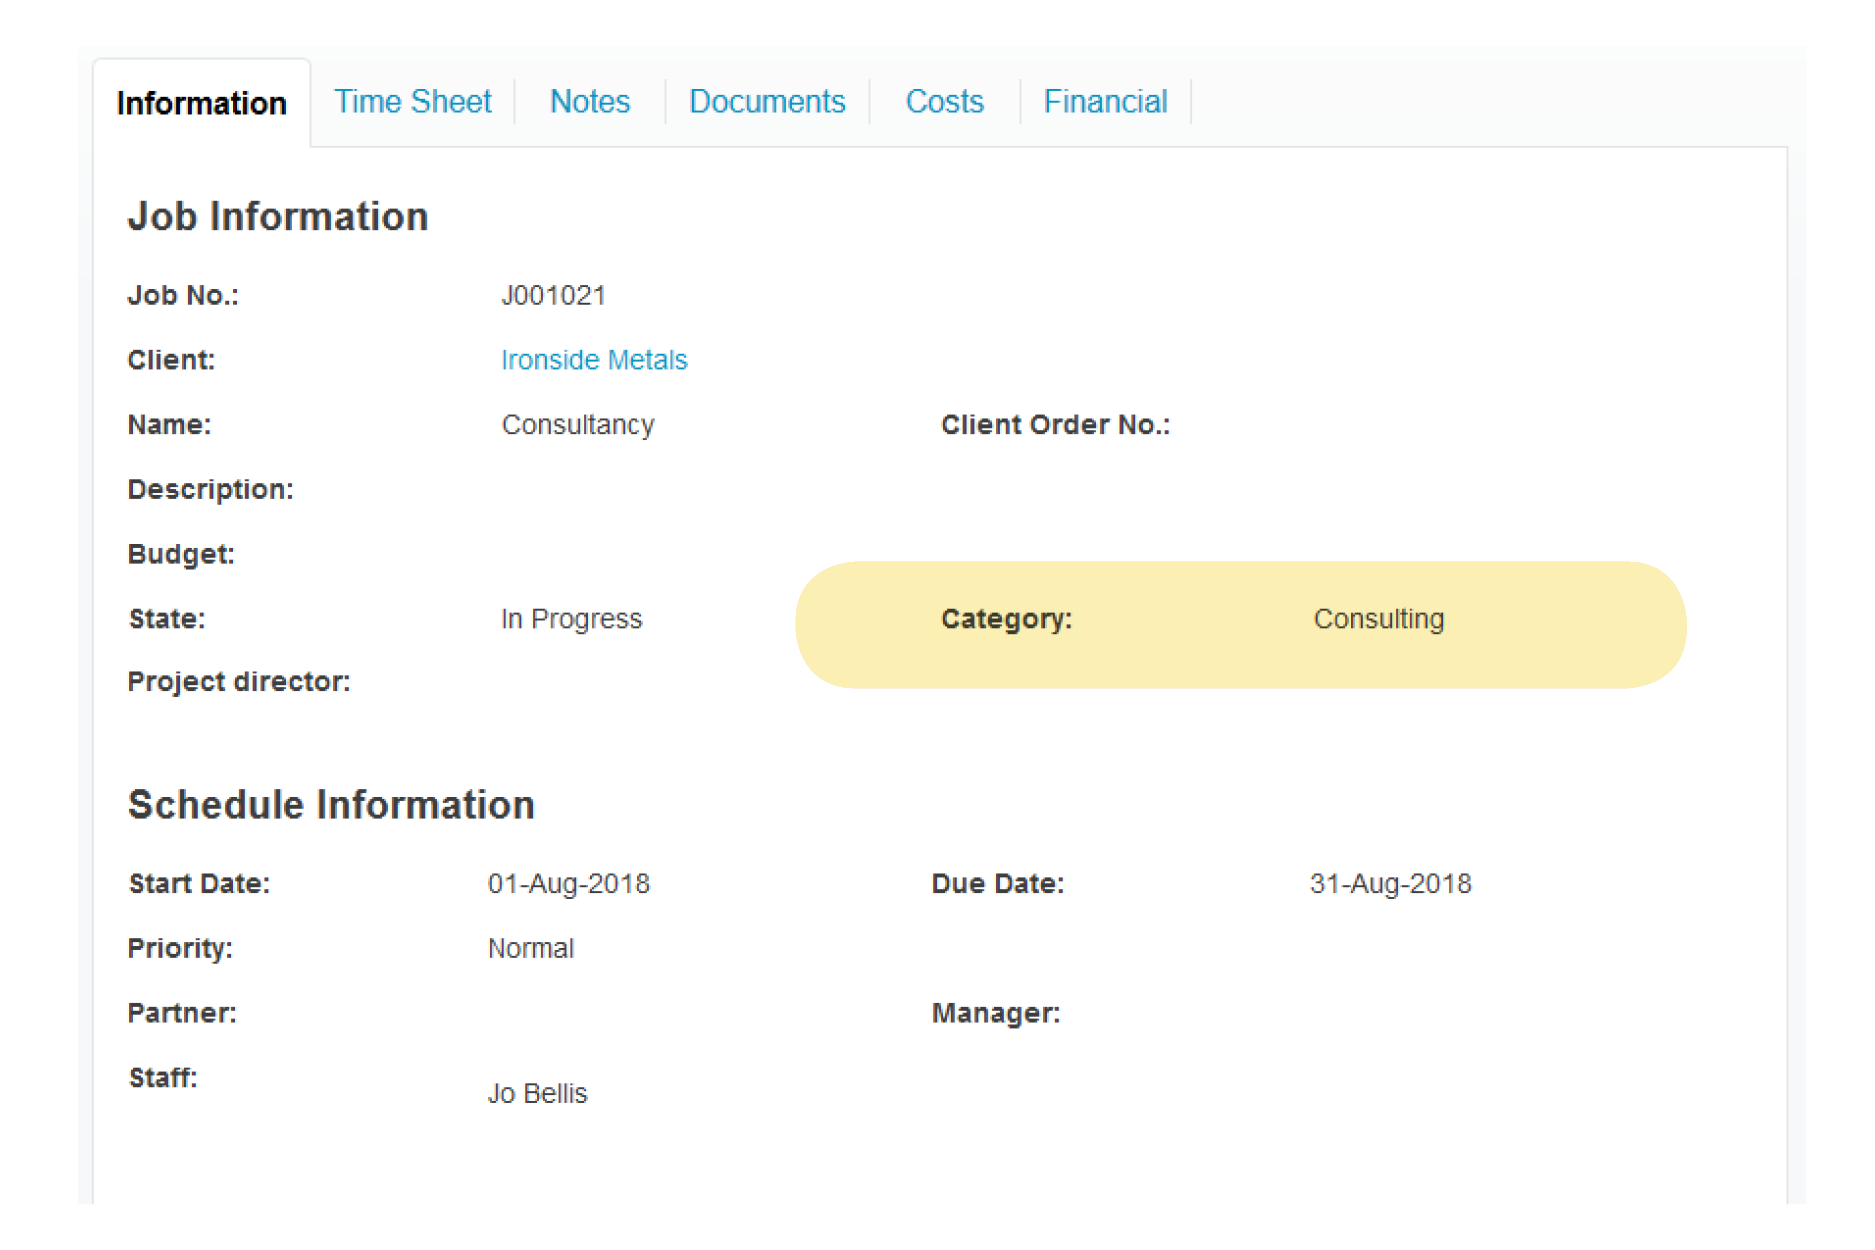 job category - consulting